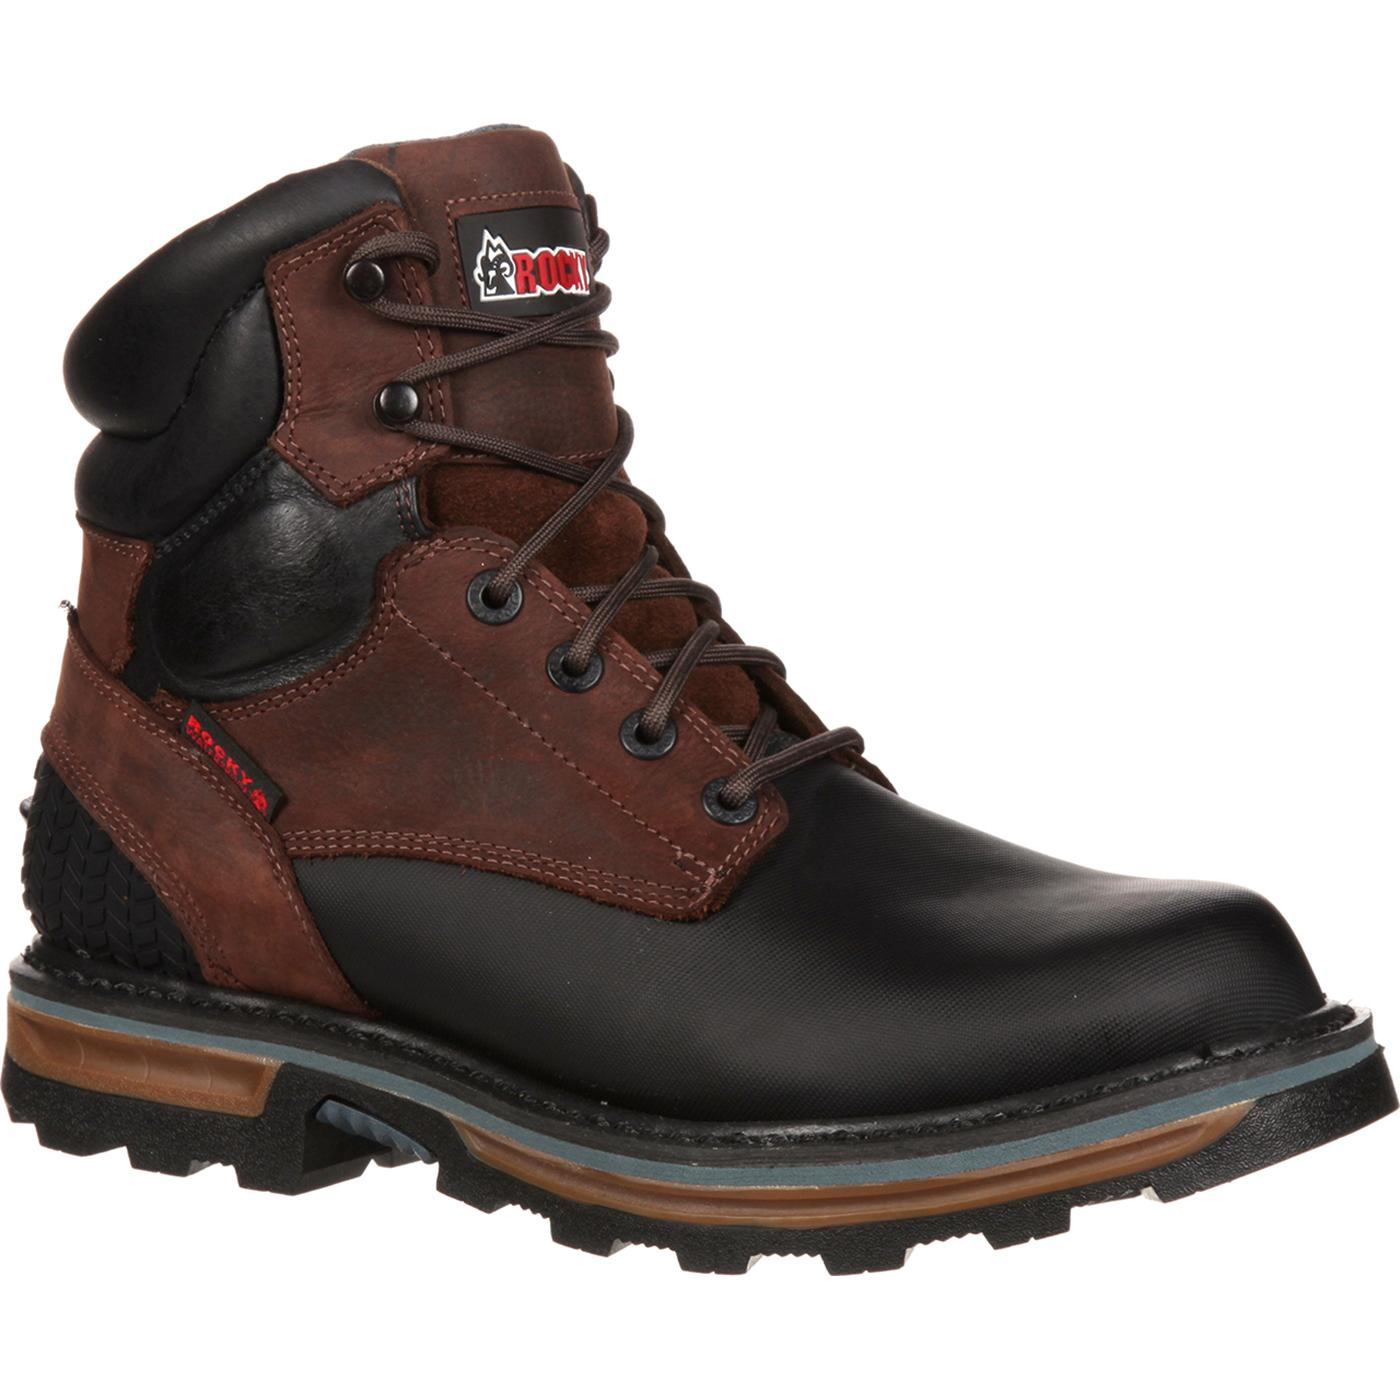 Rocky Elements Block Steel Toe Waterproof Work Boot, RKYK090